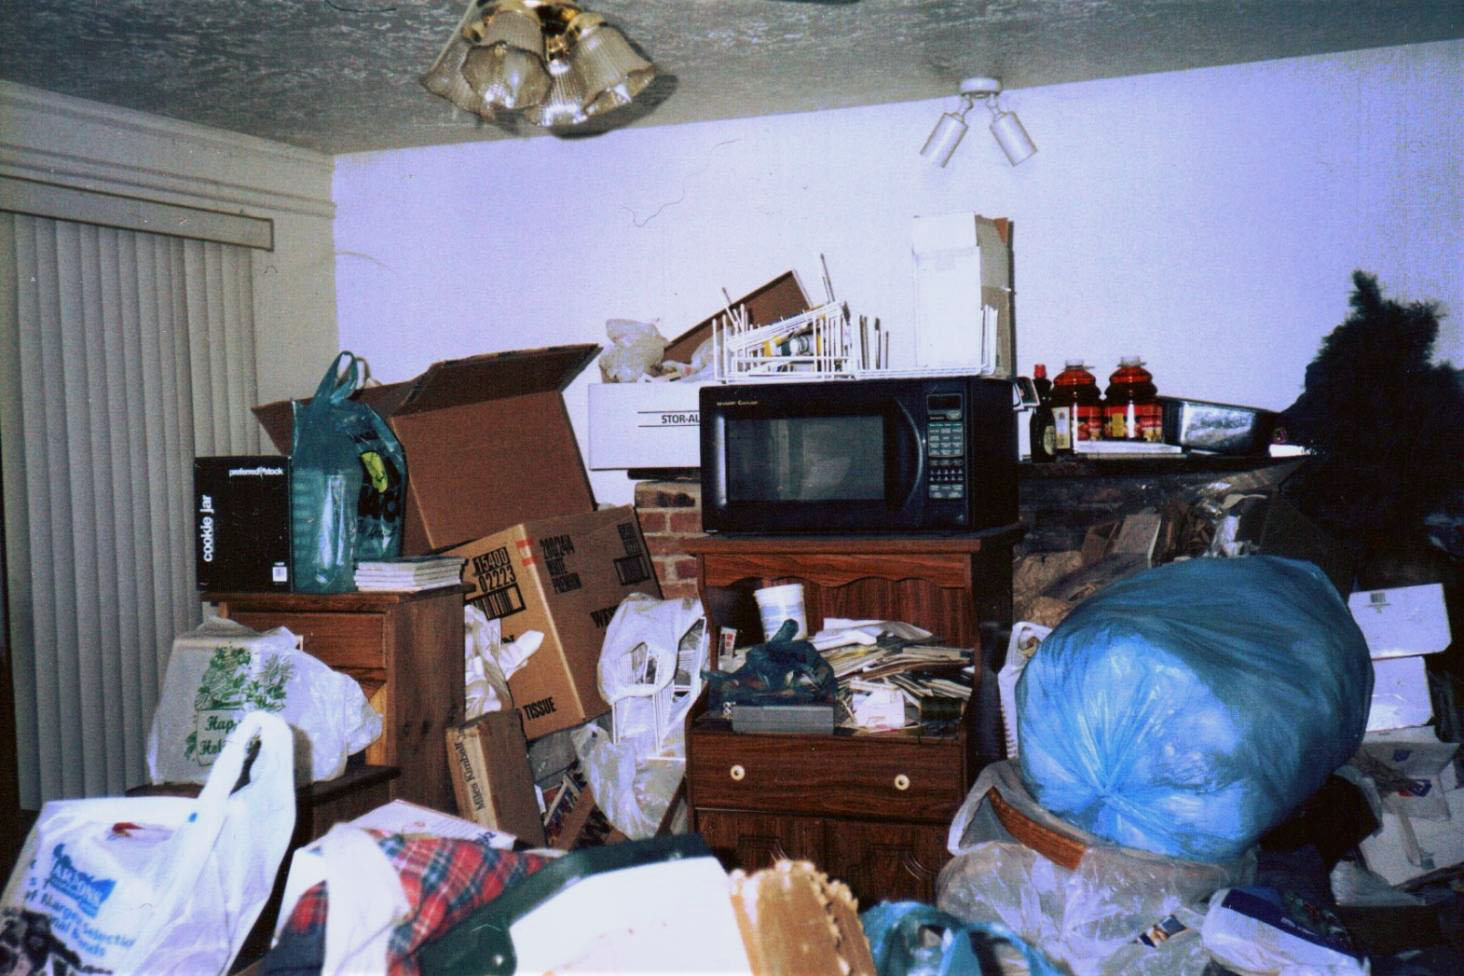 How to properly clean out a house full of junk